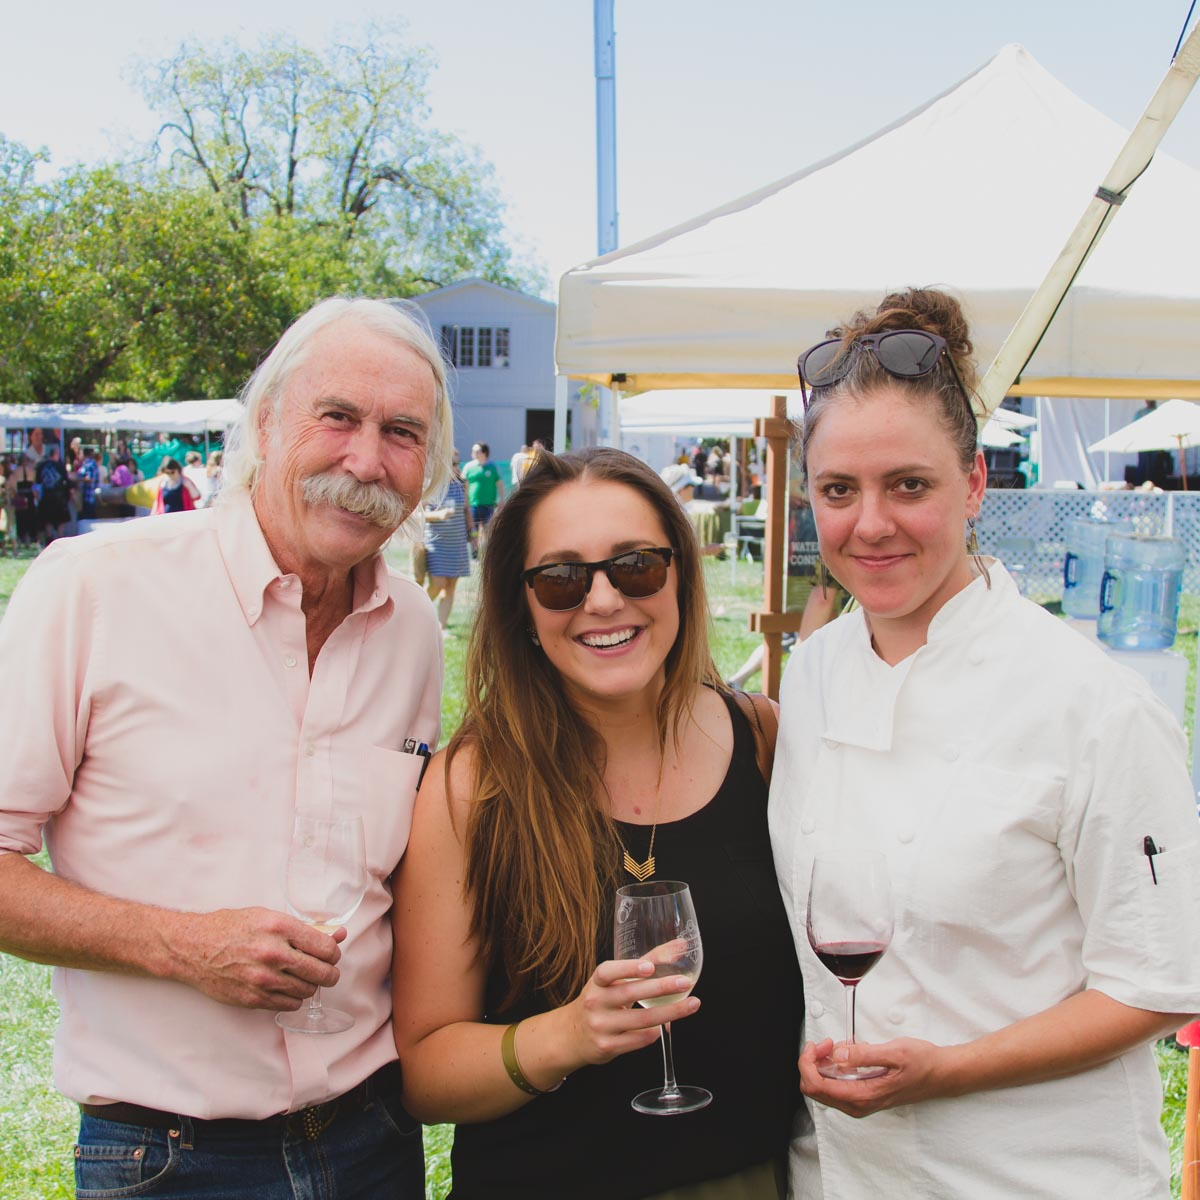 Winemaster Randy Ullom with Tomato Festival guests